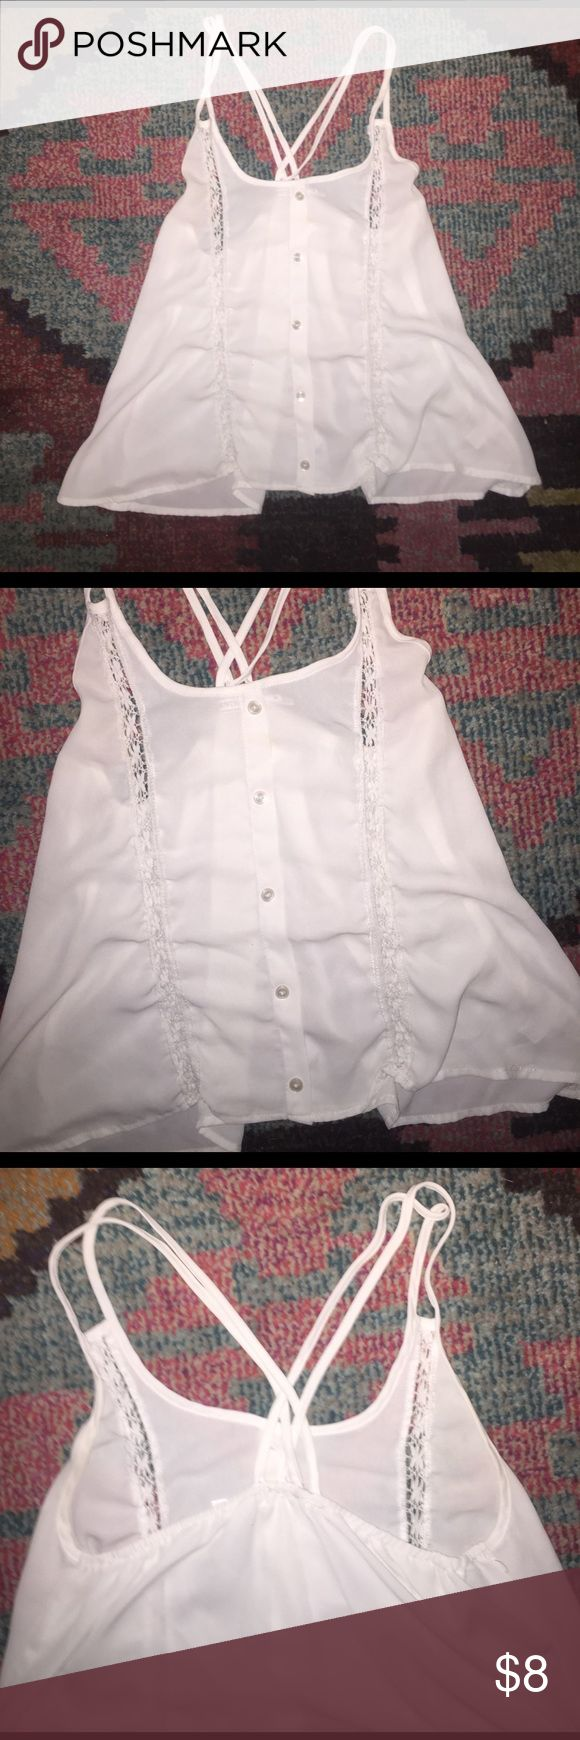 Body Central size medium white tank top blouse Body Central size medium white tank top blouse with buttons silk silky chiffon type material see through wear with a cute bralette perfect for summer Body Central Tops Tank Tops